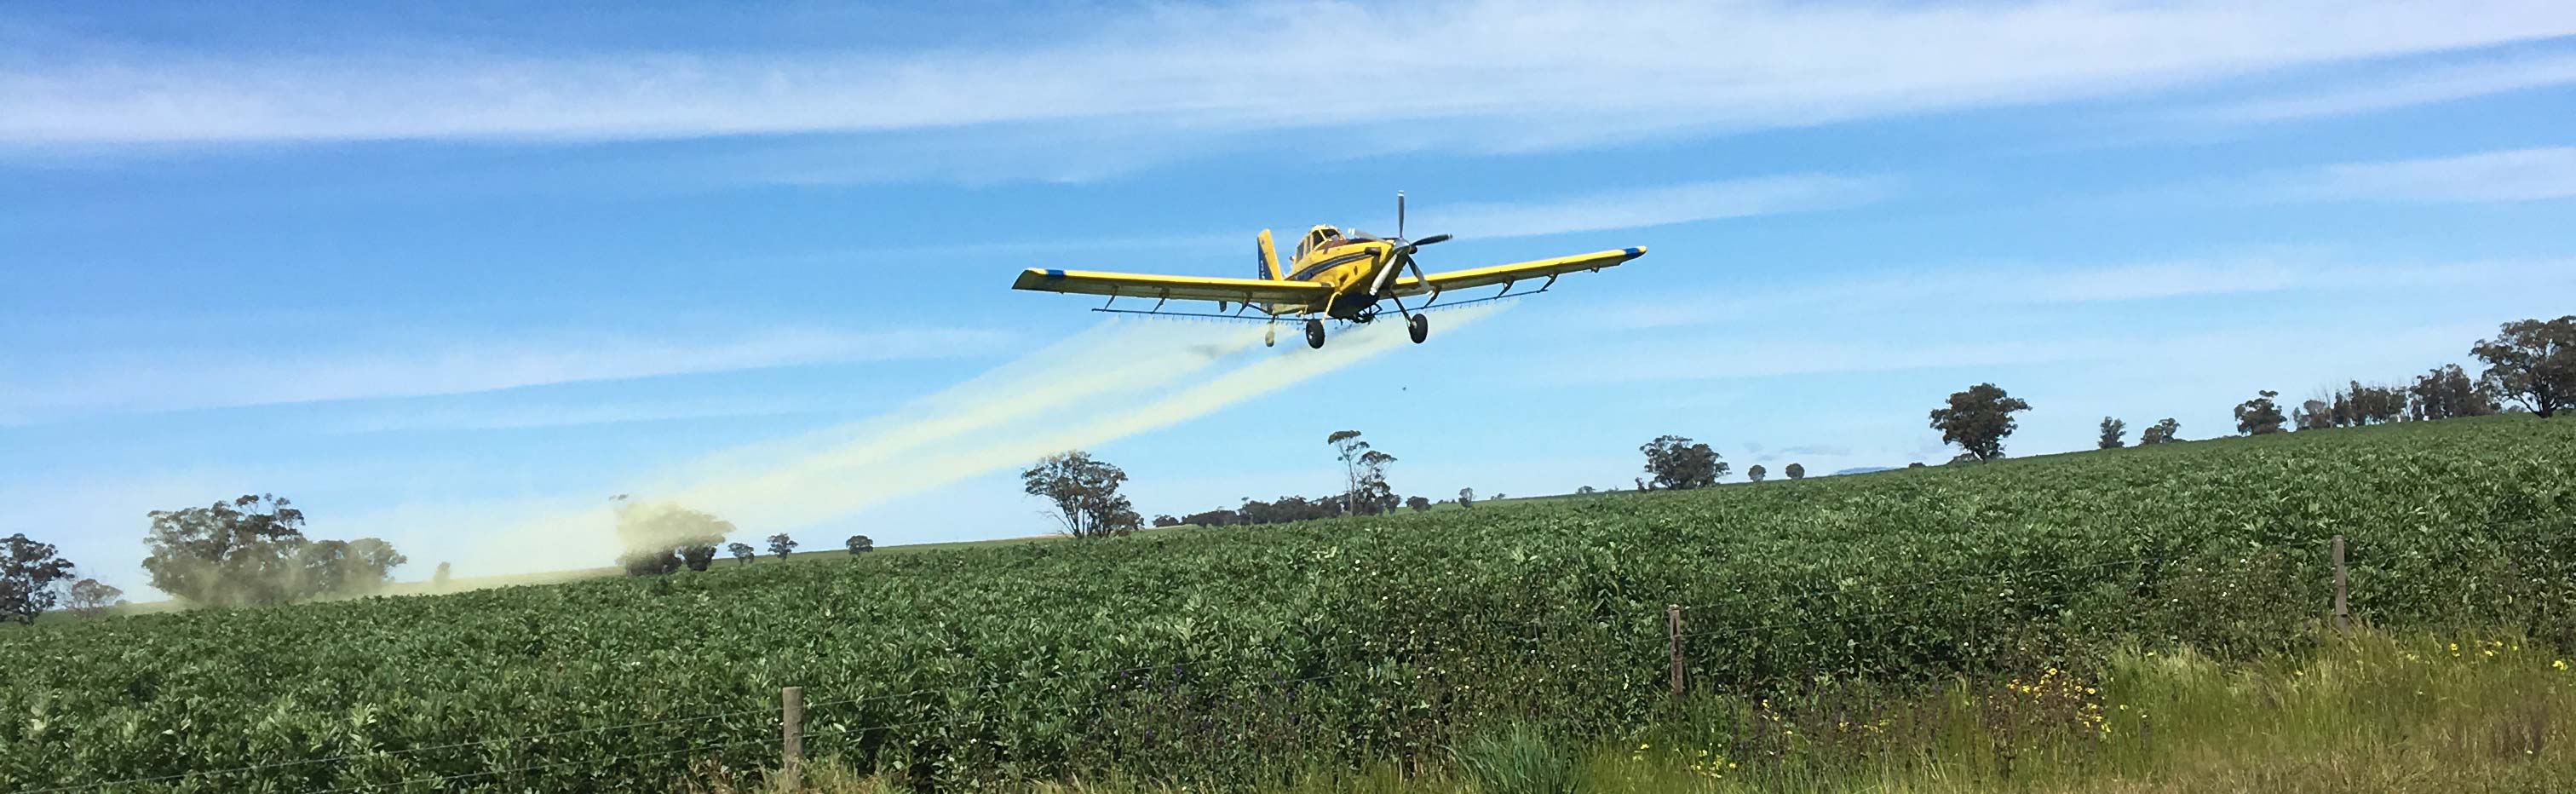 AG Airwork img of plane spraying crops